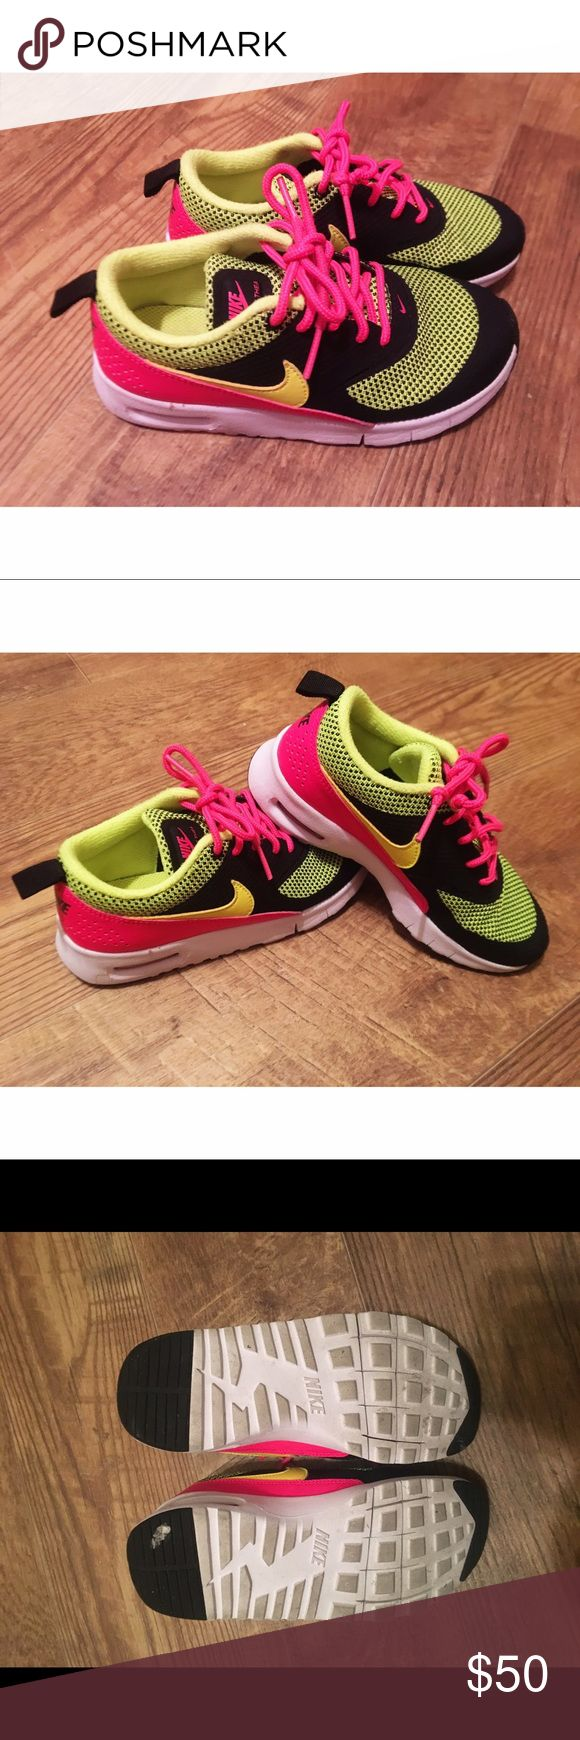 Girl's Neon Pink and Green Nike Shoes Girl's Neon Pink and Green Nike Shoes • Size 12c • Barely used • Still retails for $80 at Nordstrom Nike Shoes Sneakers